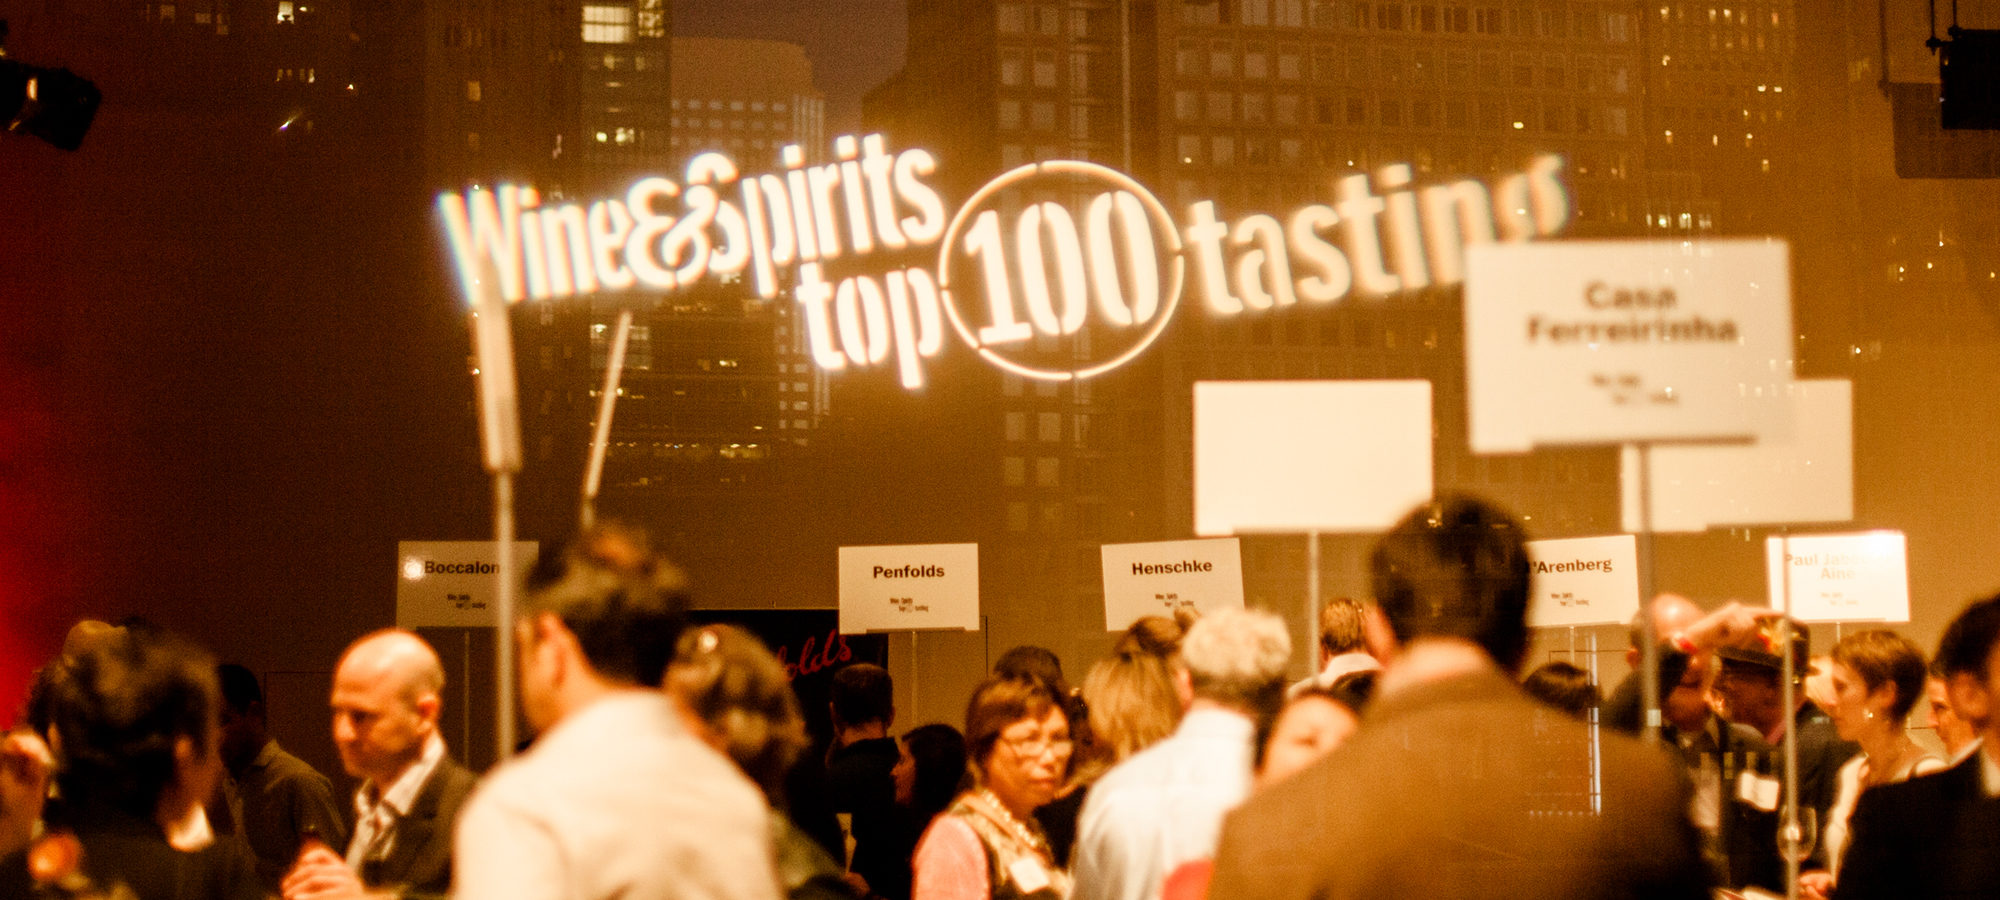 Produttori del Barbaresco and Von Strasser winery among the Top 100 wineries of 2017 by Wine&Spirits magazine